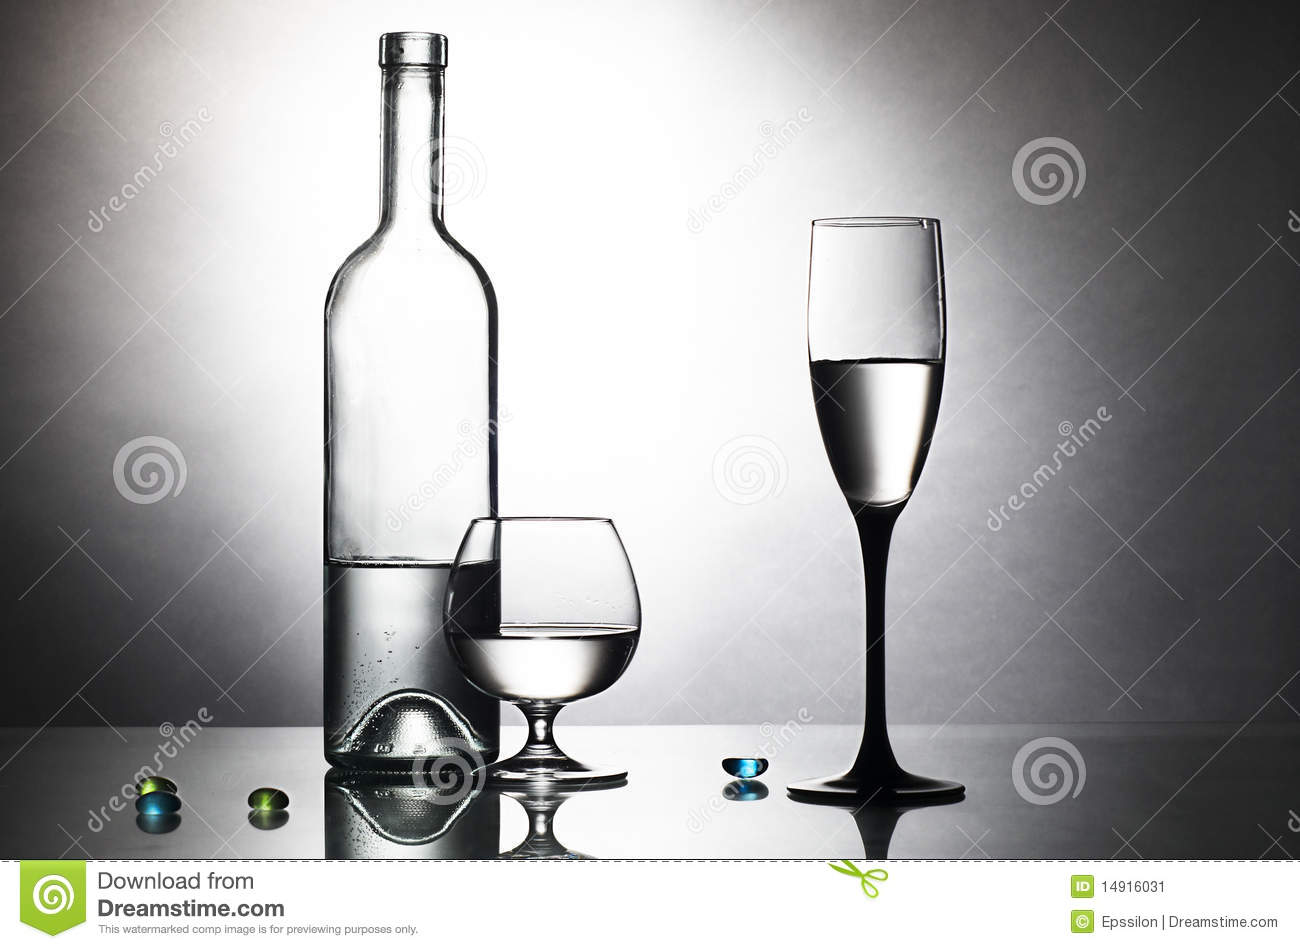 Bottle and two glasses on table